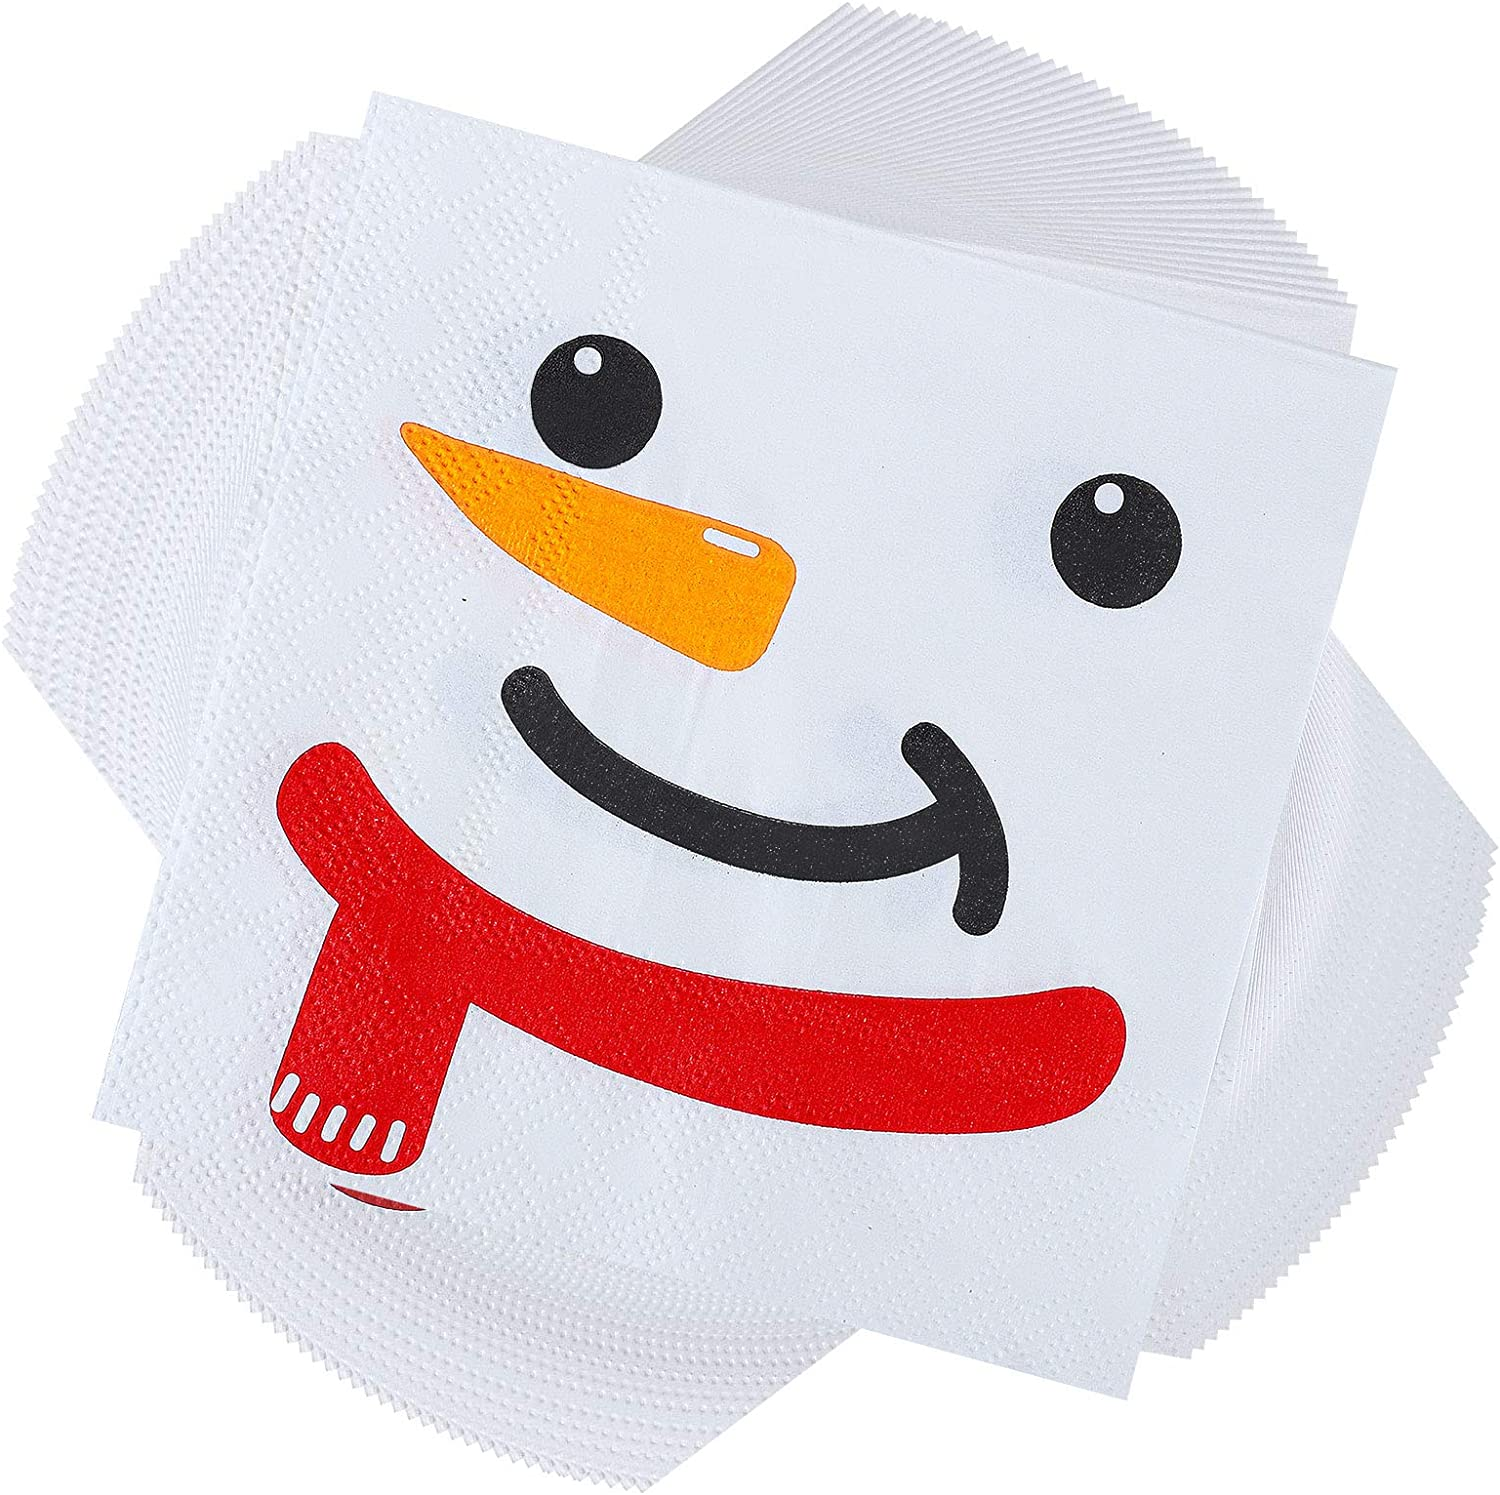 Aneco 100 Pack Christmas Lunch Napkins Party Supplies Disposable Paper Napkins Party Supplies with 3 Layers Fancy Cocktail Napkins, 5 by 5 Inches (Snowman)